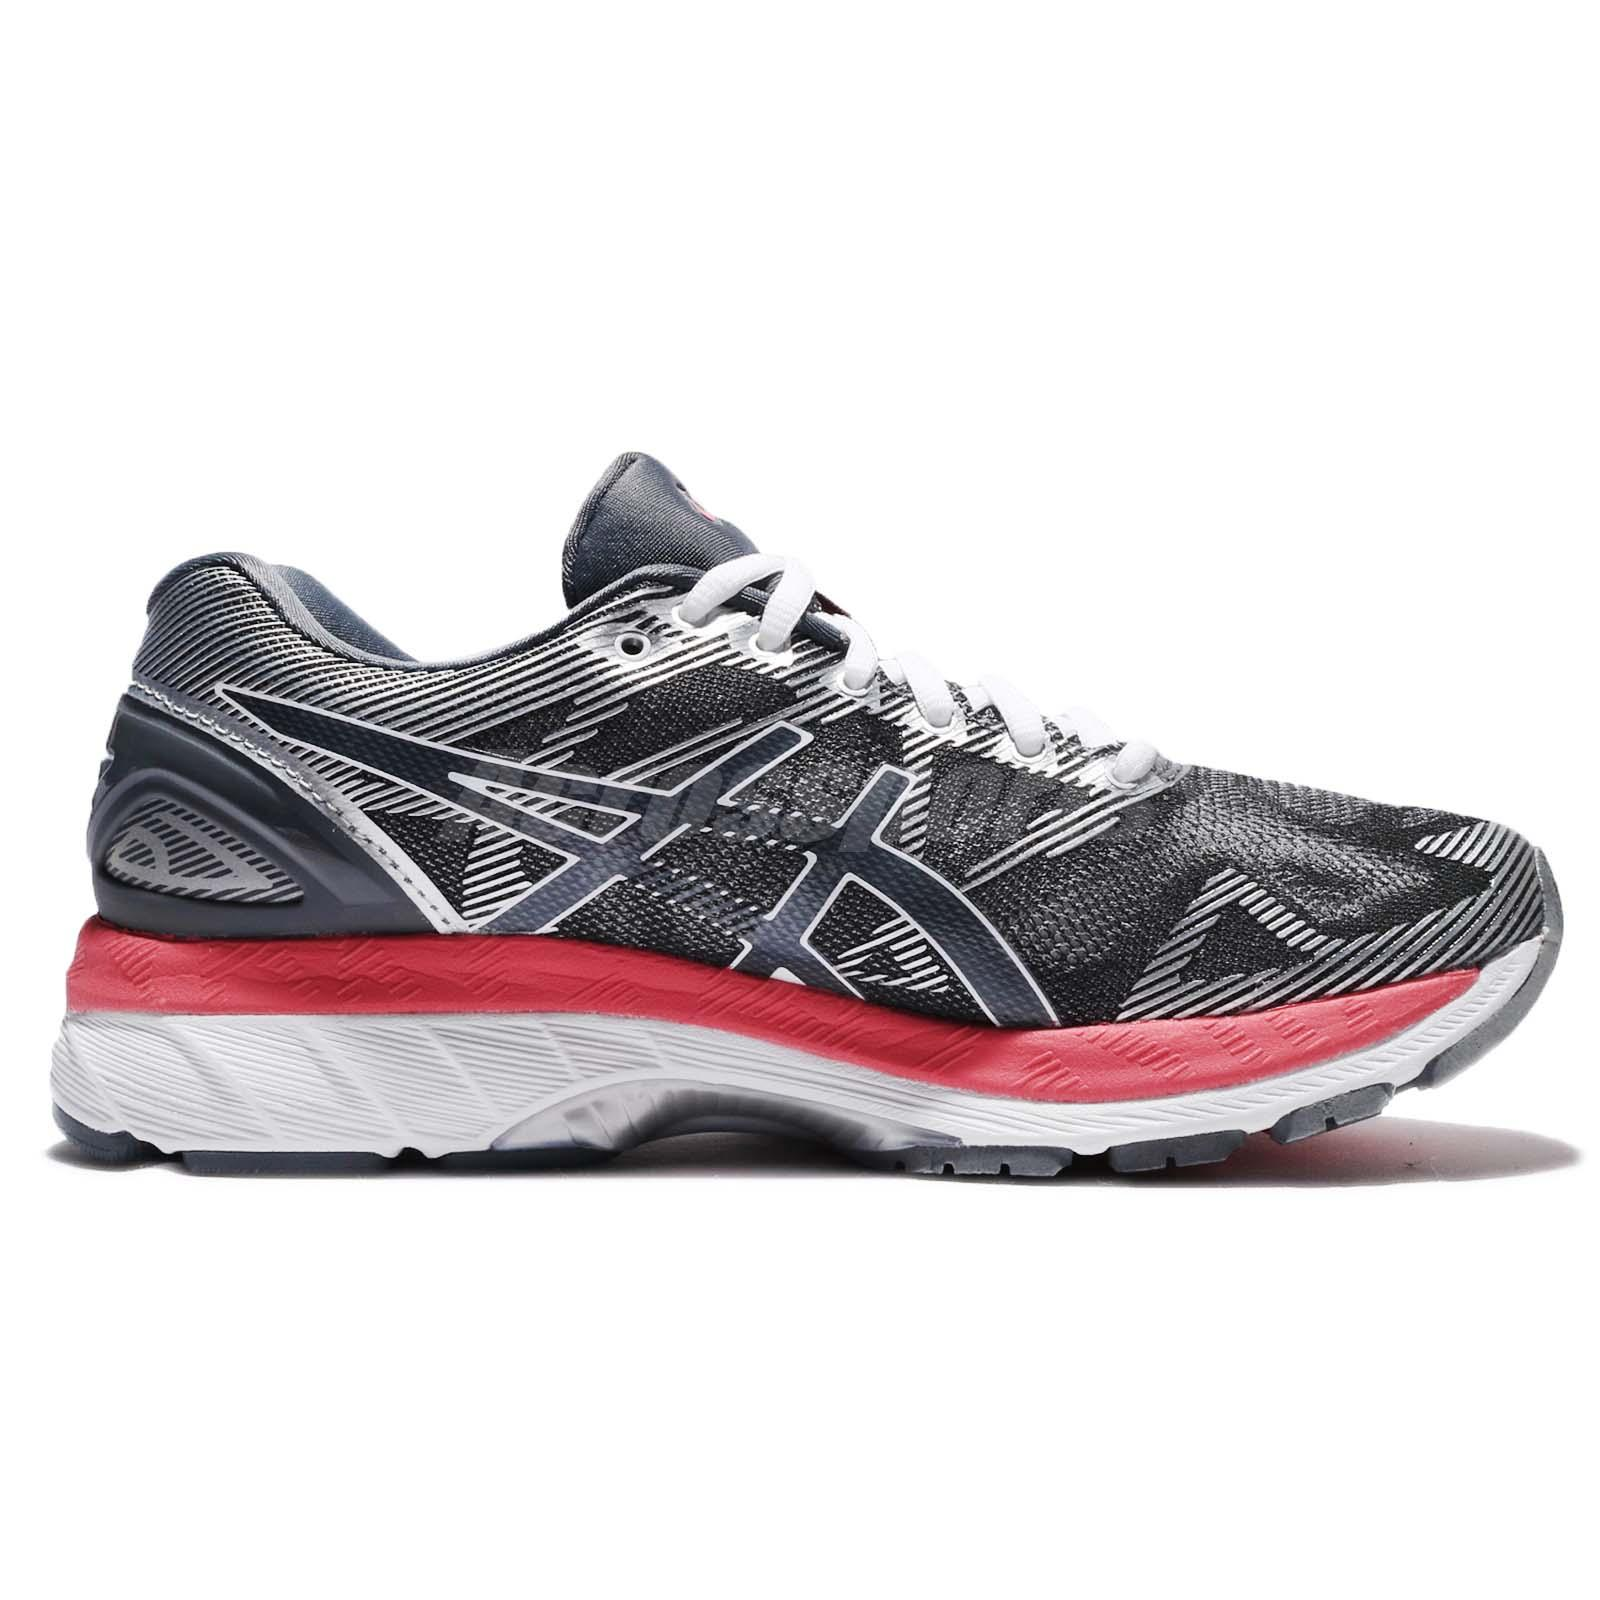 designer fashion facec 7c43a Details about Asics Gel-Nimbus 19 D Wide Grey Pink Women Running Shoes  Sneakers T751N-9719